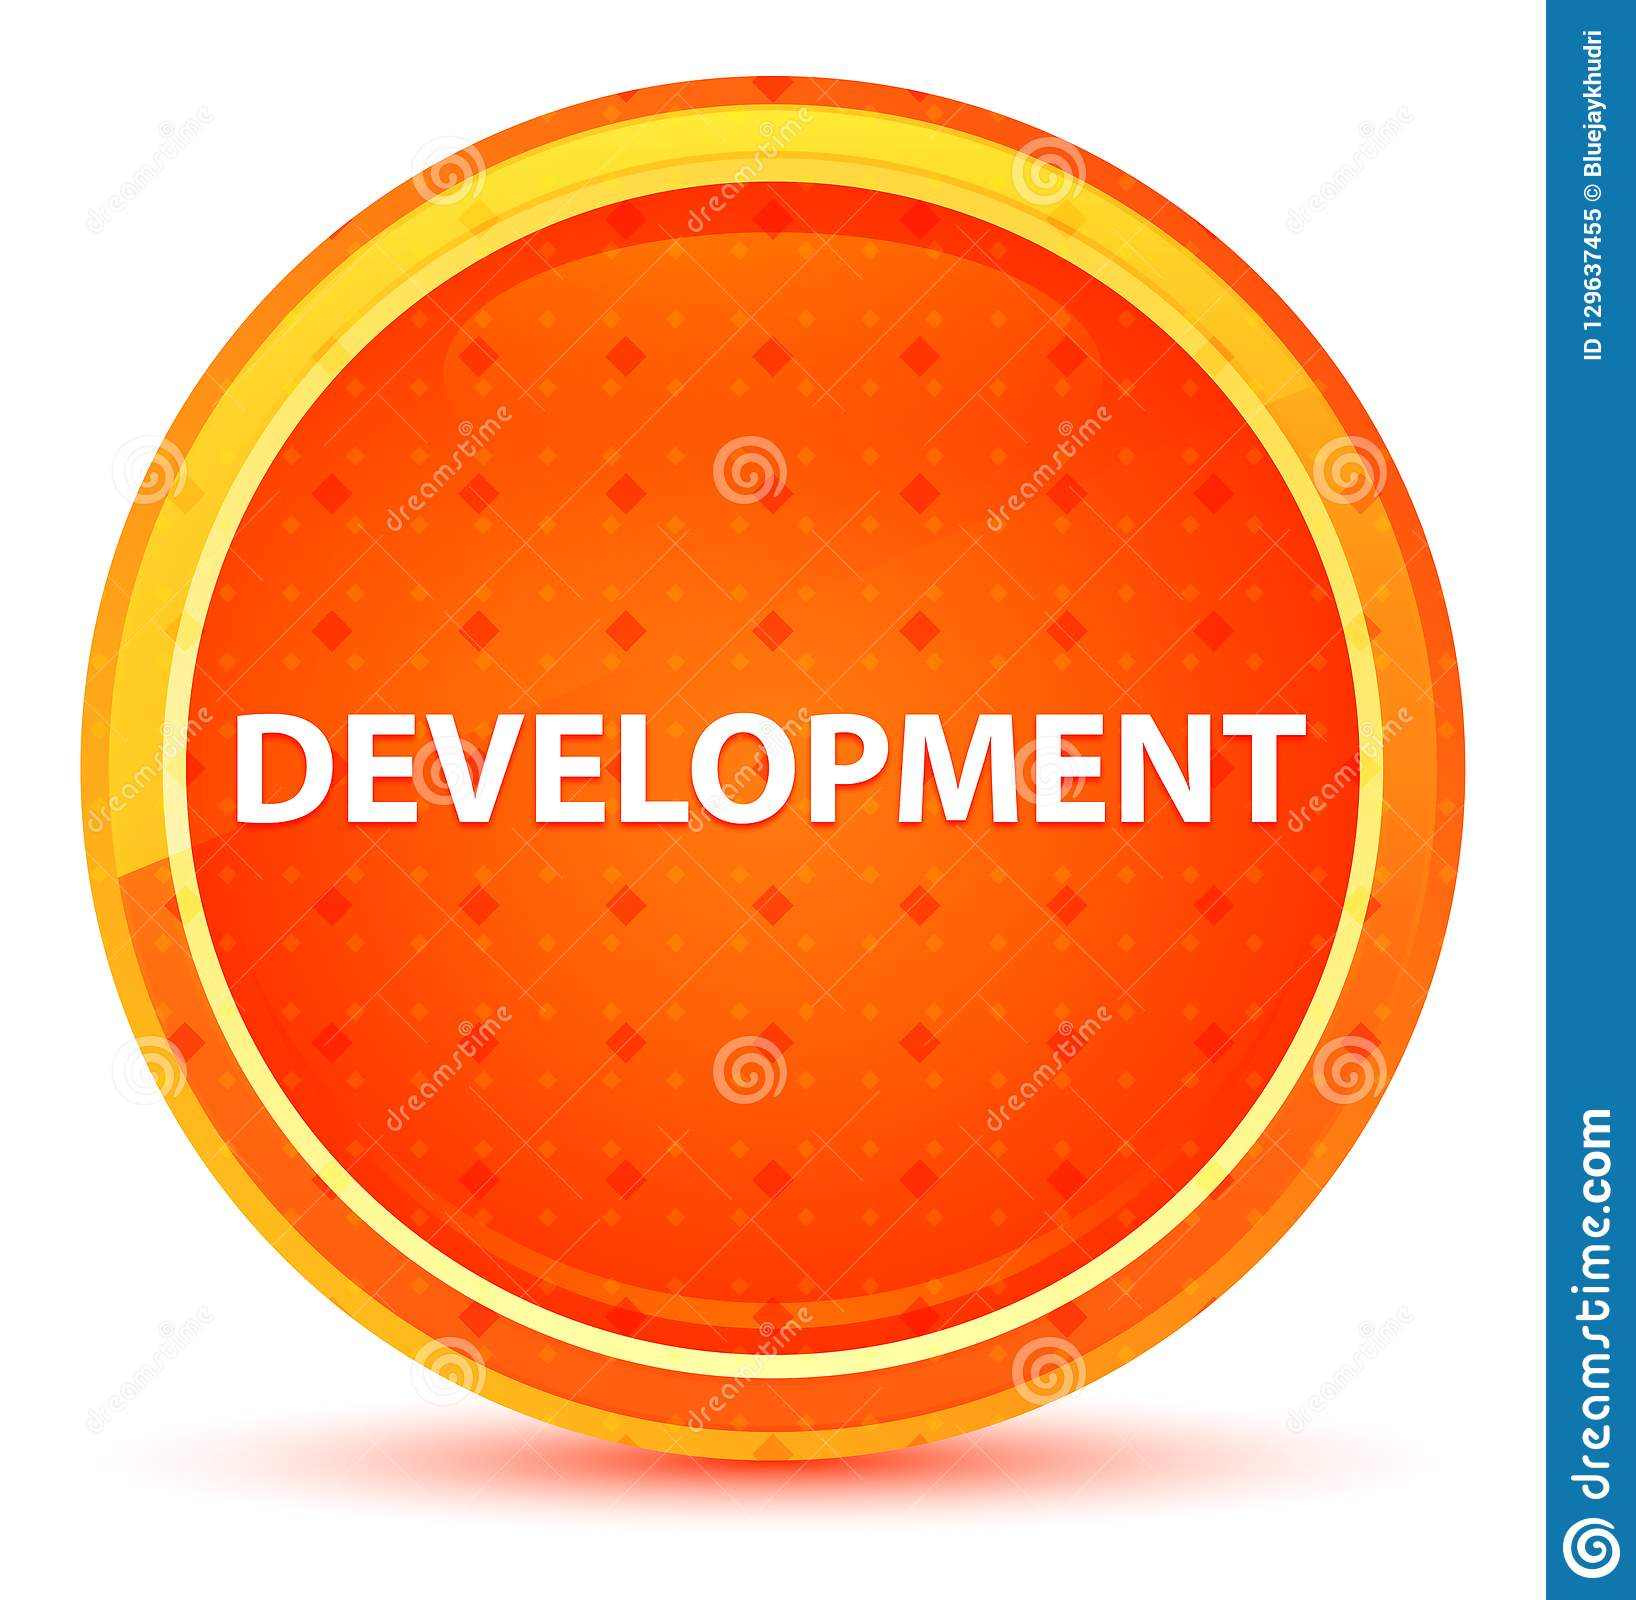 Development Natural Orange Round Button